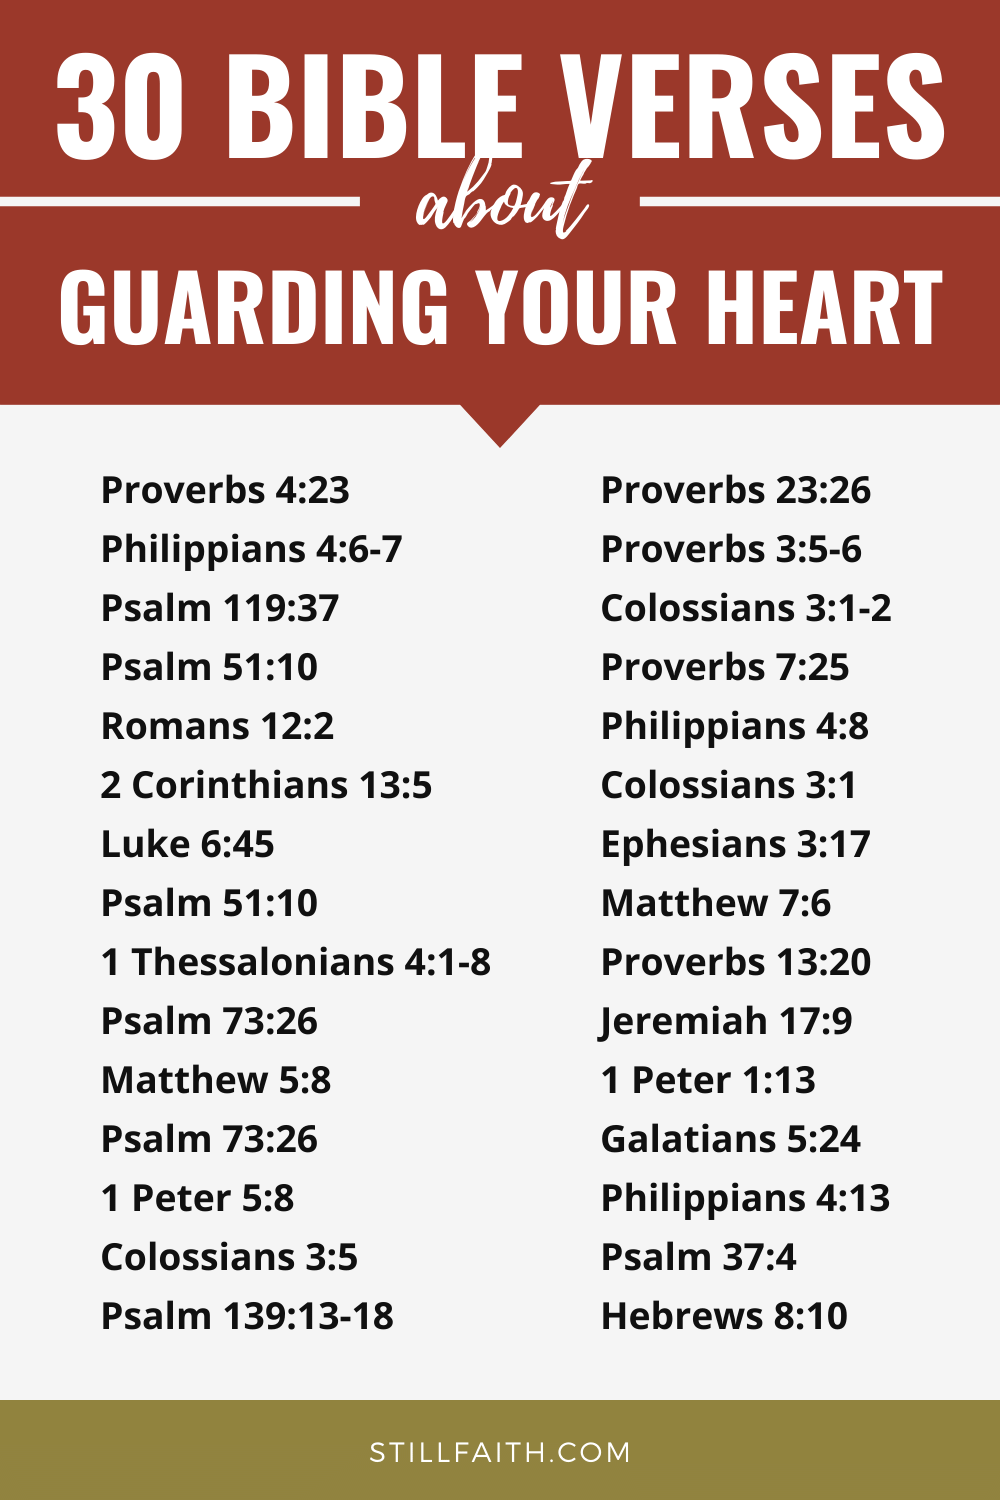 134 Bible Verses about Guarding Your Heart